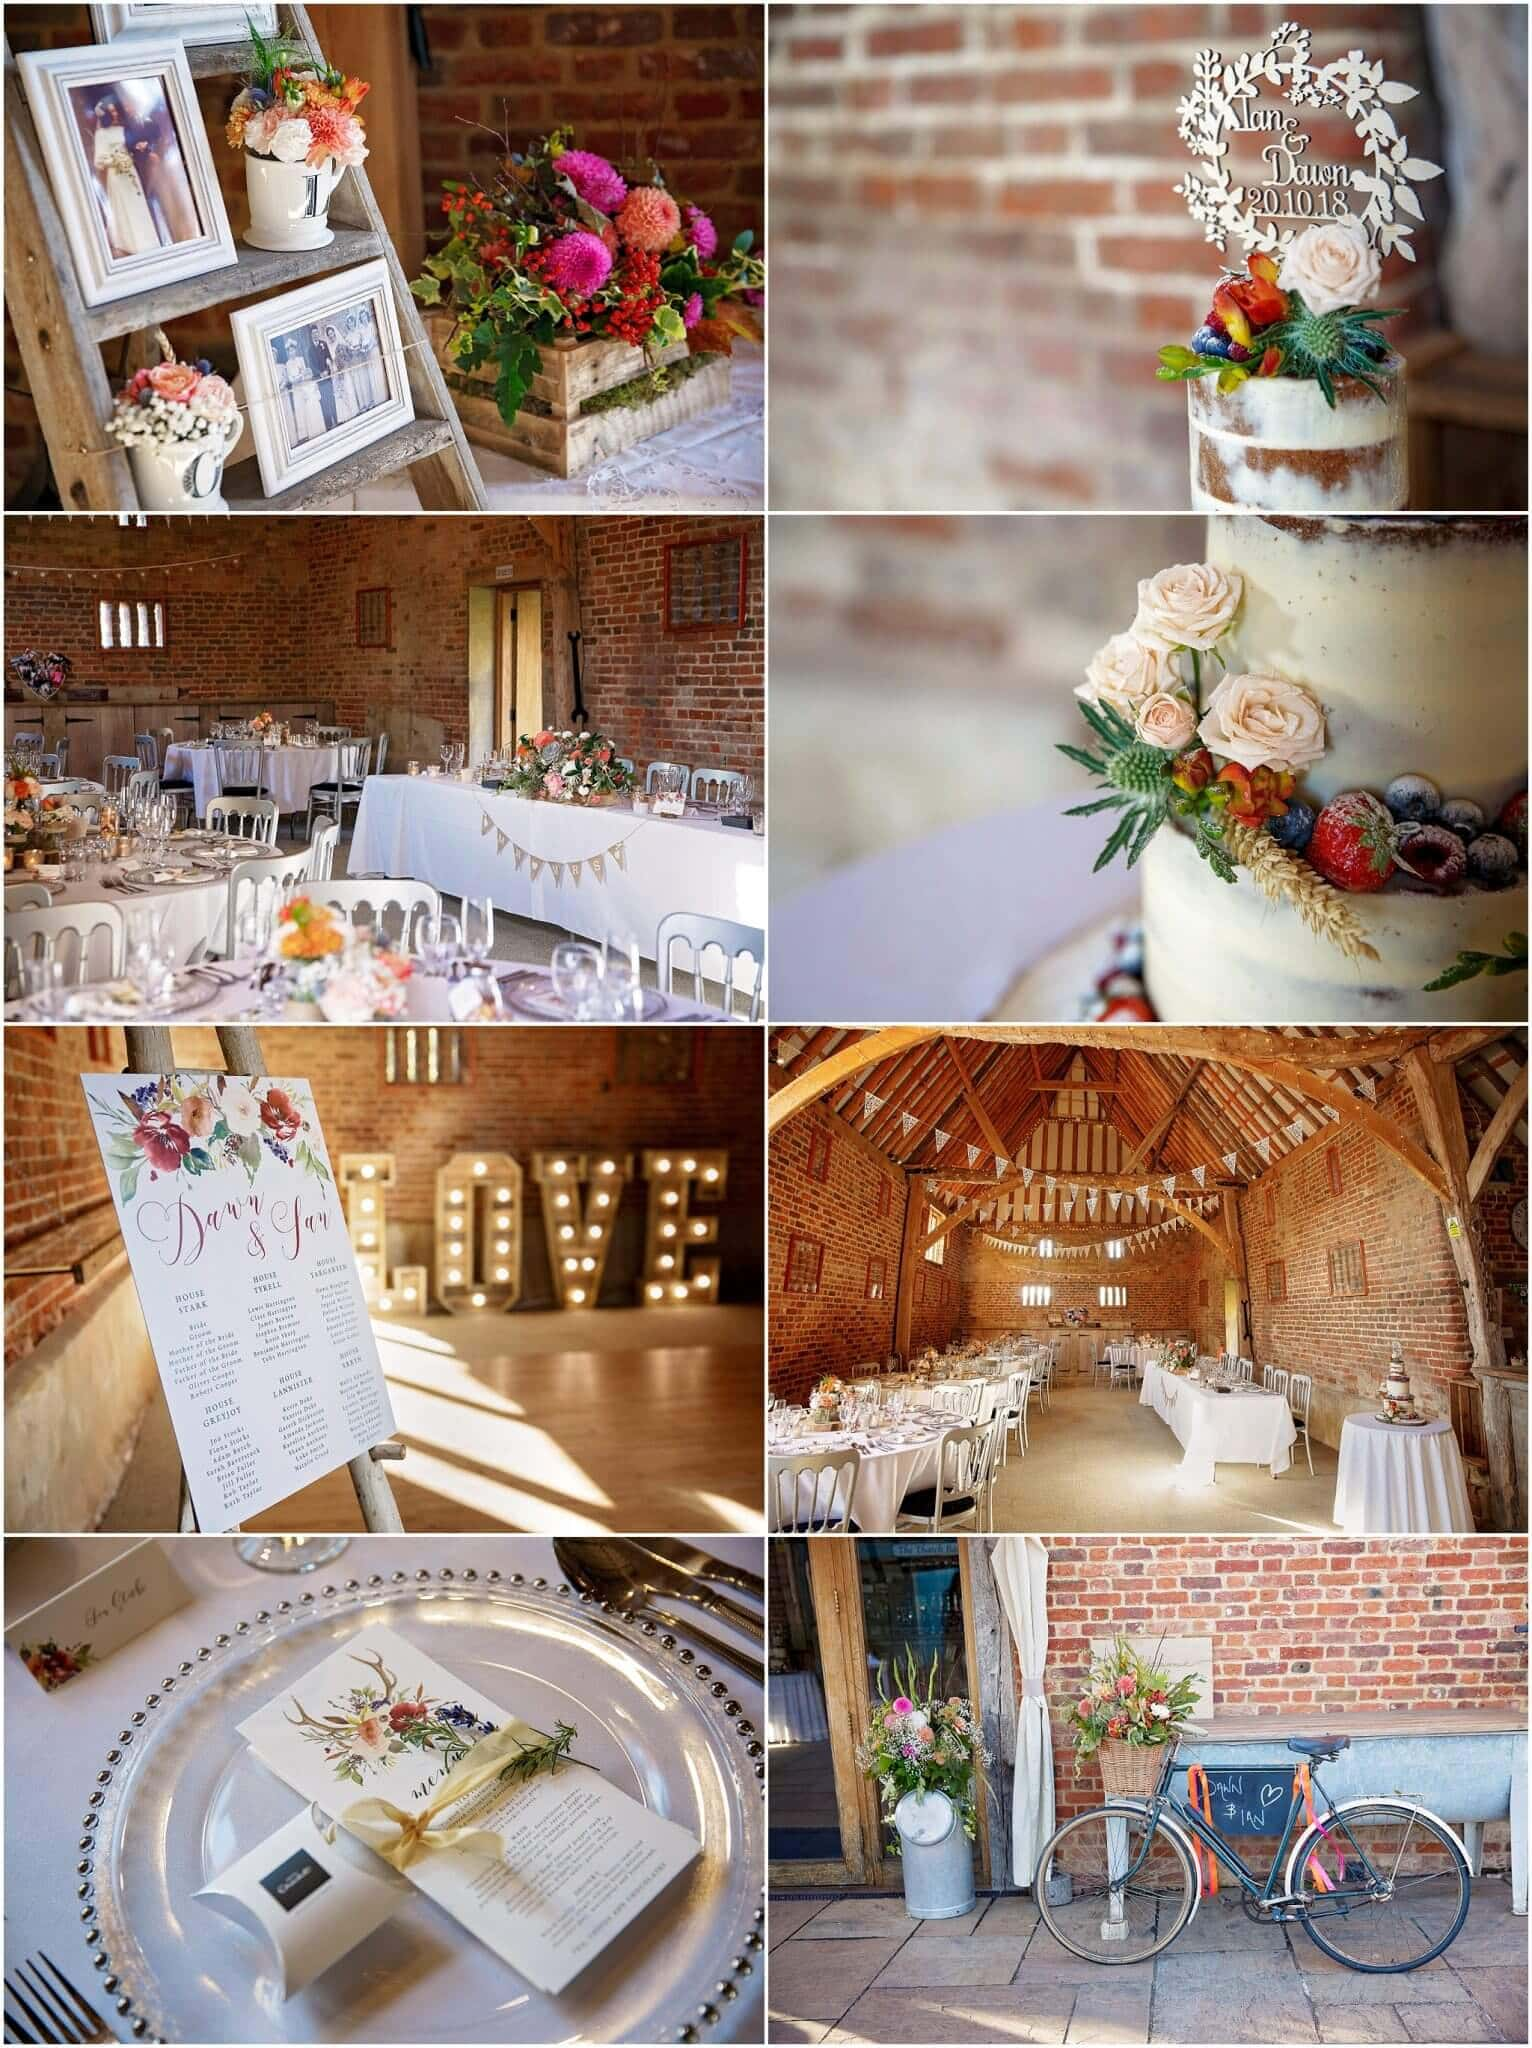 Wedding at The Thatched Barn Yelling